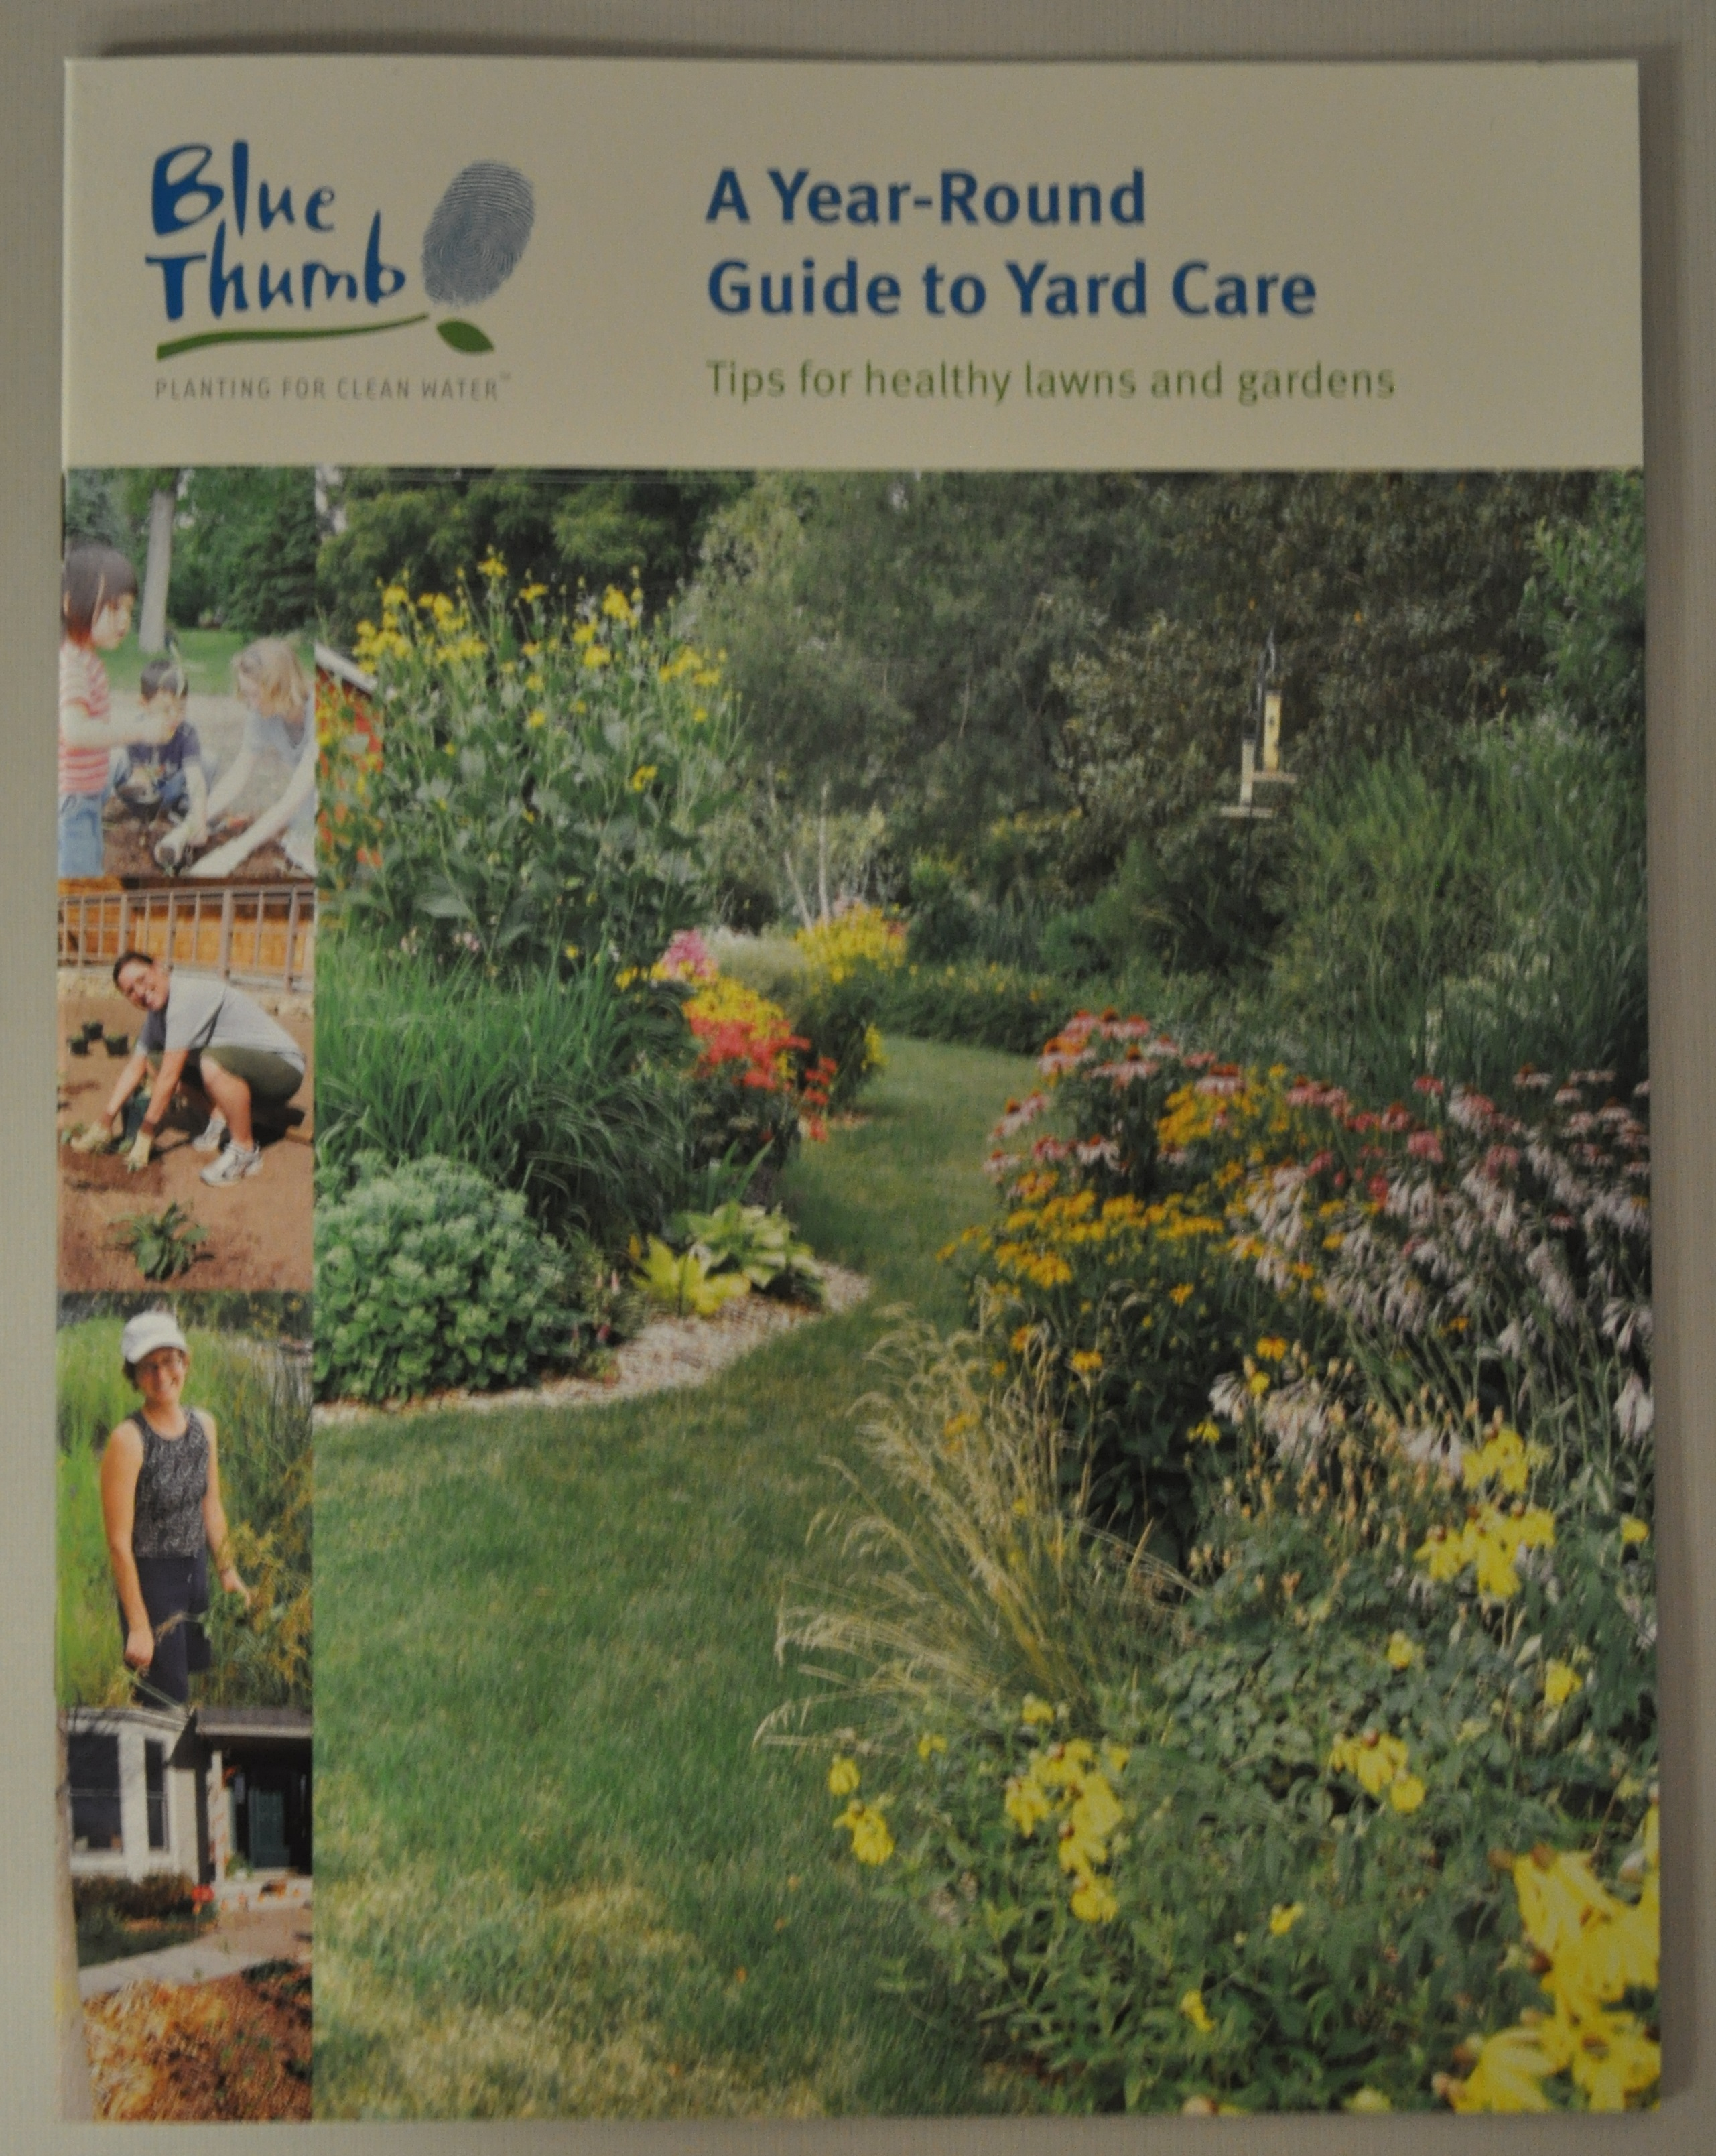 Blue Thumb yard care guide